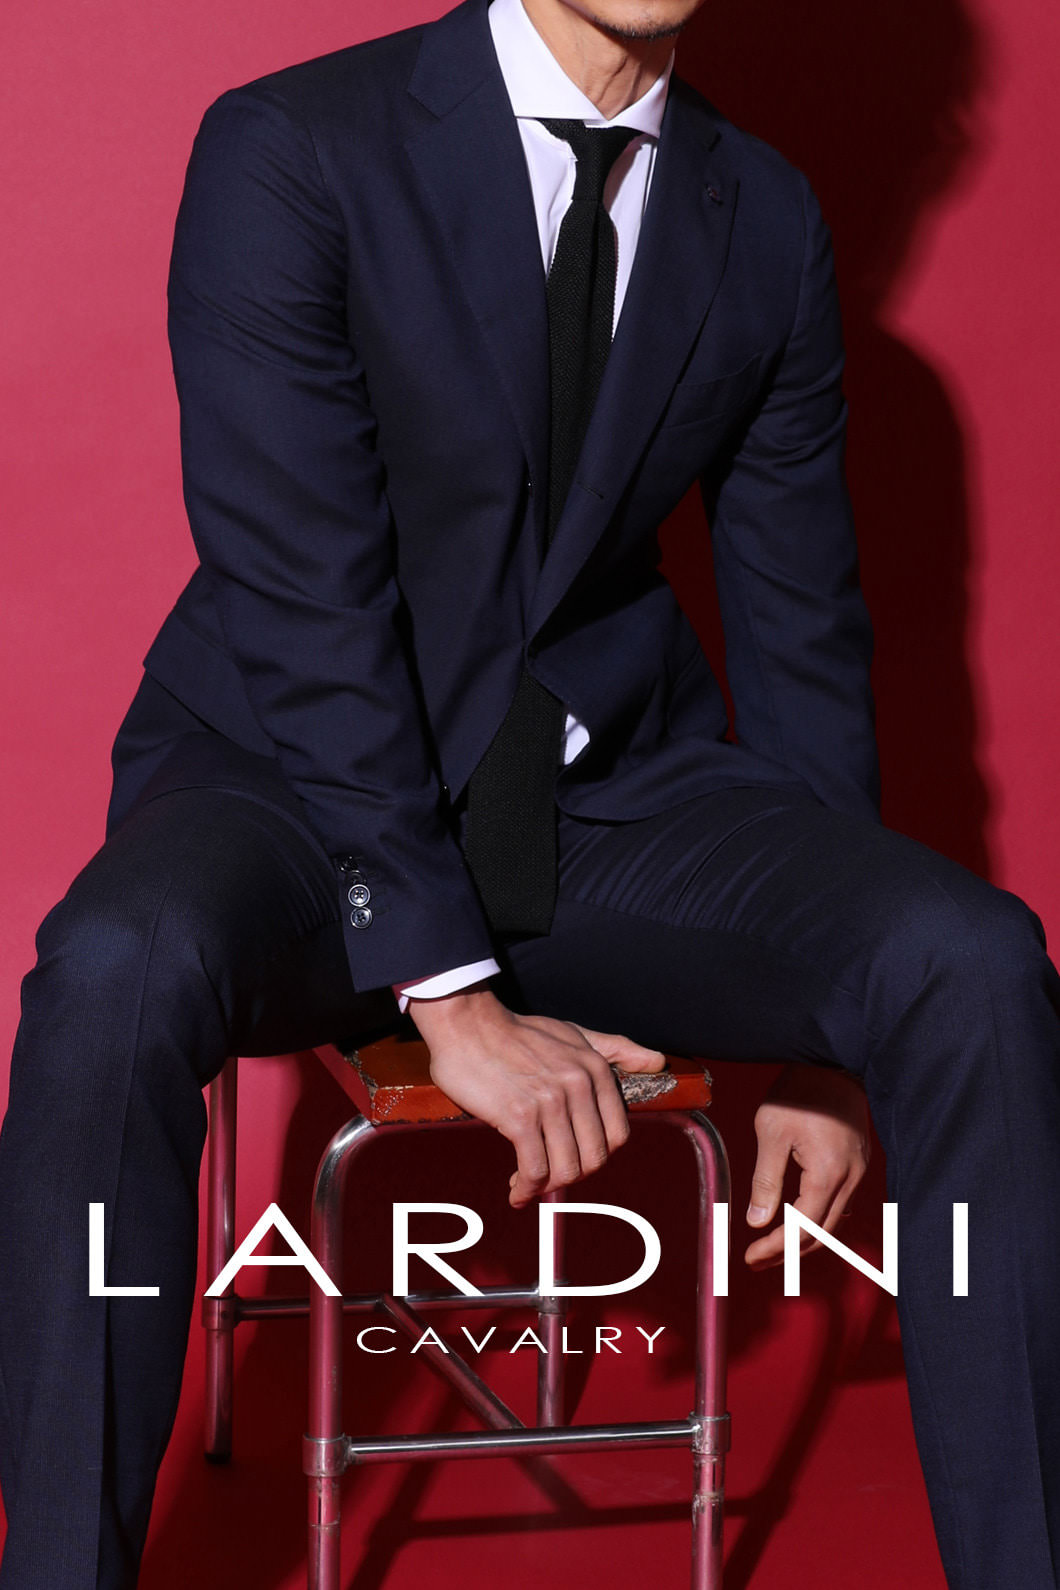 Lardini Cavalry Twill Suit-Navy[ITALY-Original]-극소량 한정!